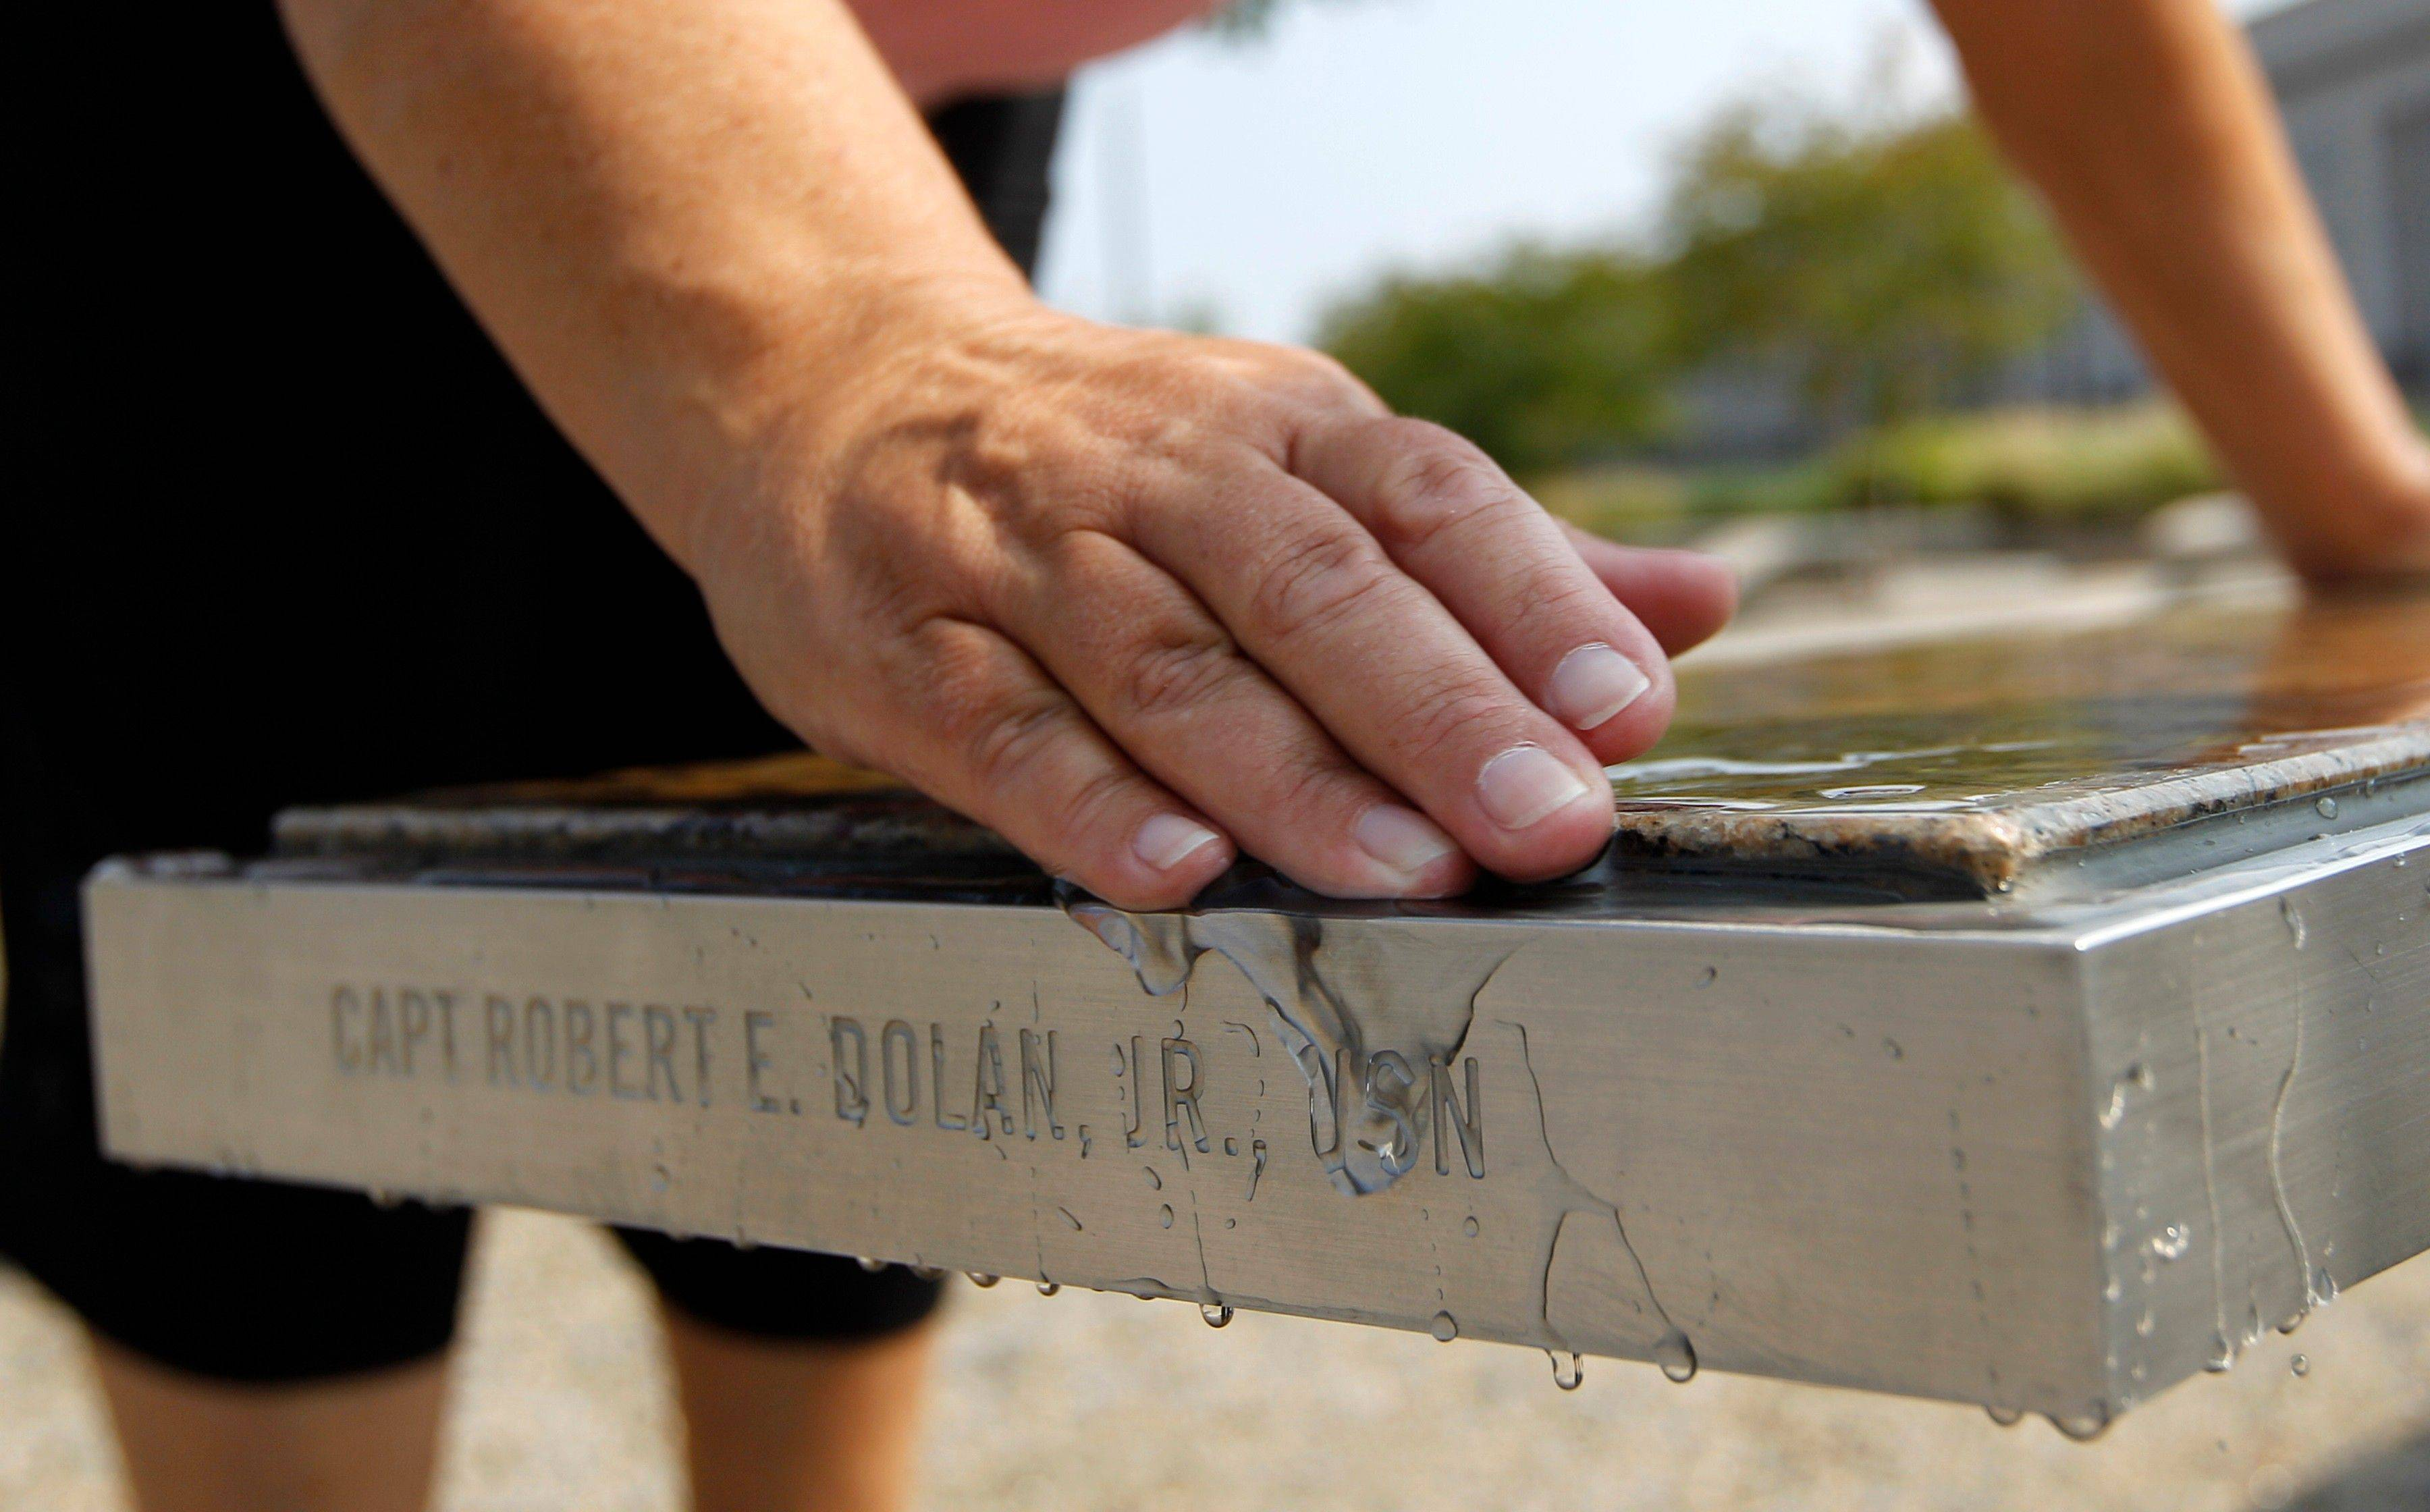 Volunteer docent Lisa T. Dolan wipes water off the bench that bears the name of her late husband, Navy Capt. Robert E. Dolan Jr., at the Pentagon Memorial in Arlington, Va.